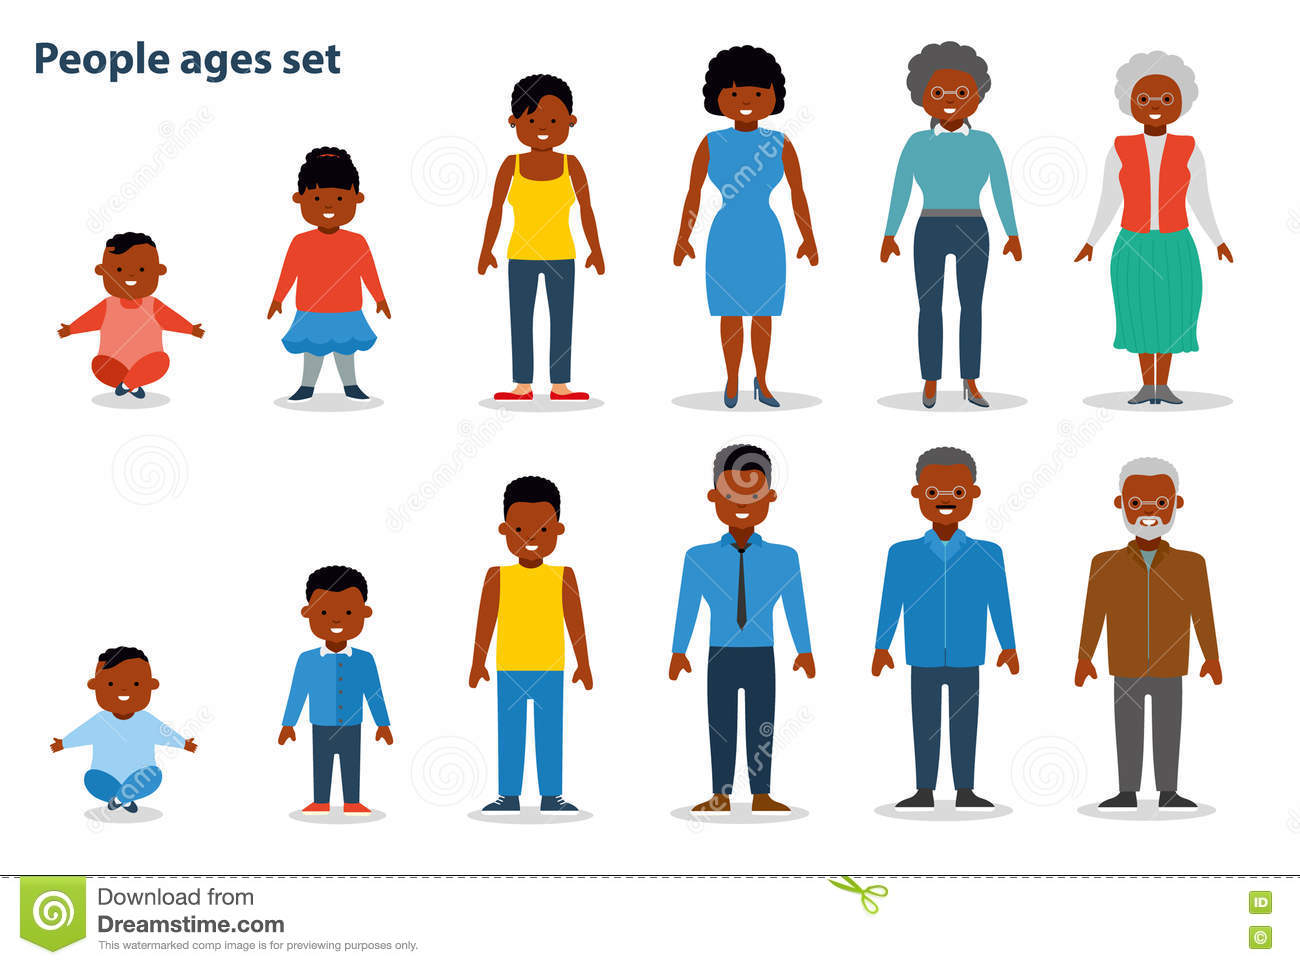 The Set Of People Of Different Ages On The Rise From